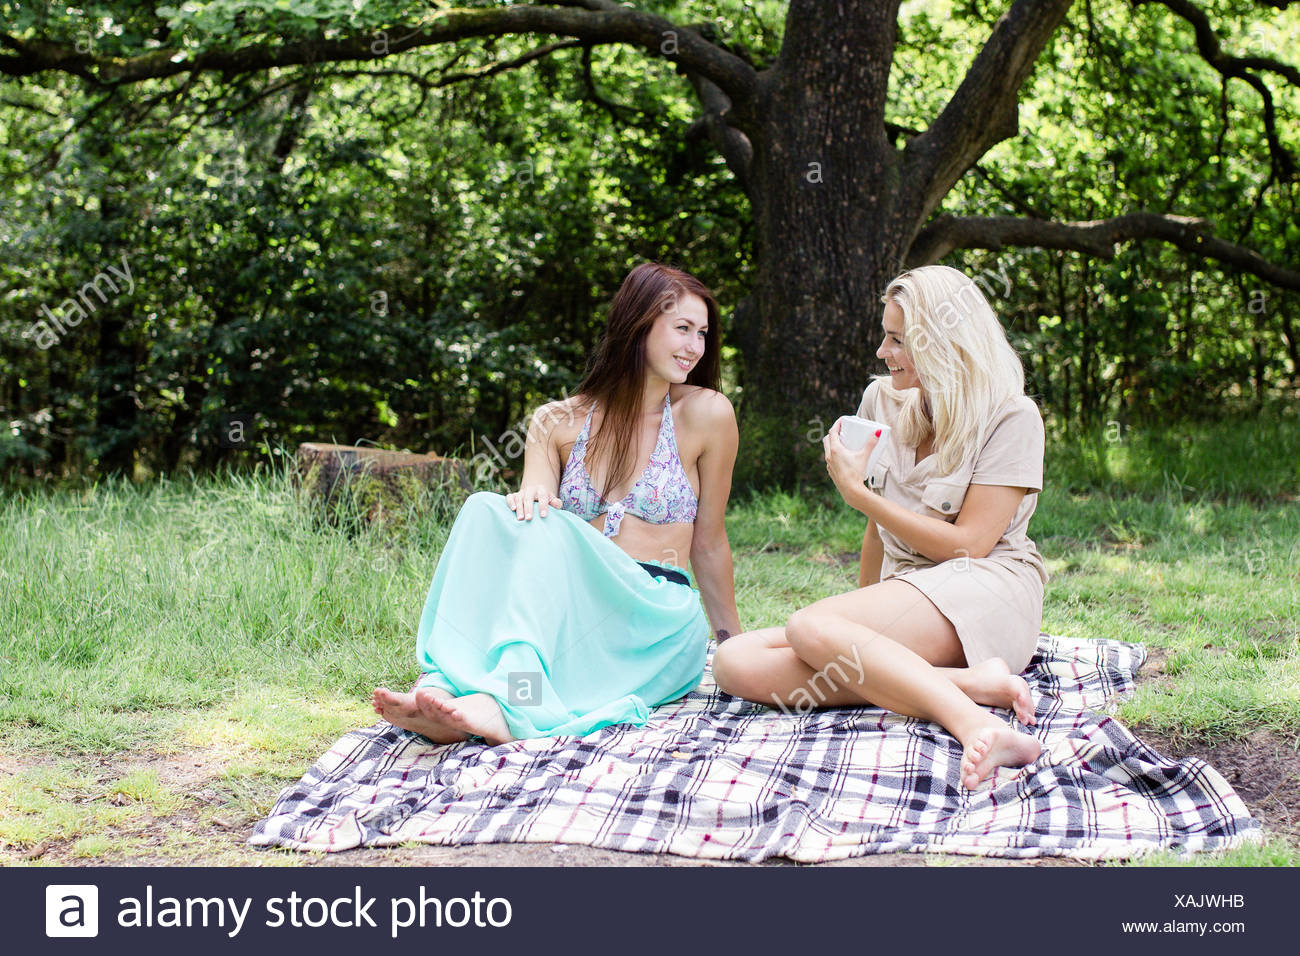 Two woman sitting on a picnic blanket talking - Stock Image